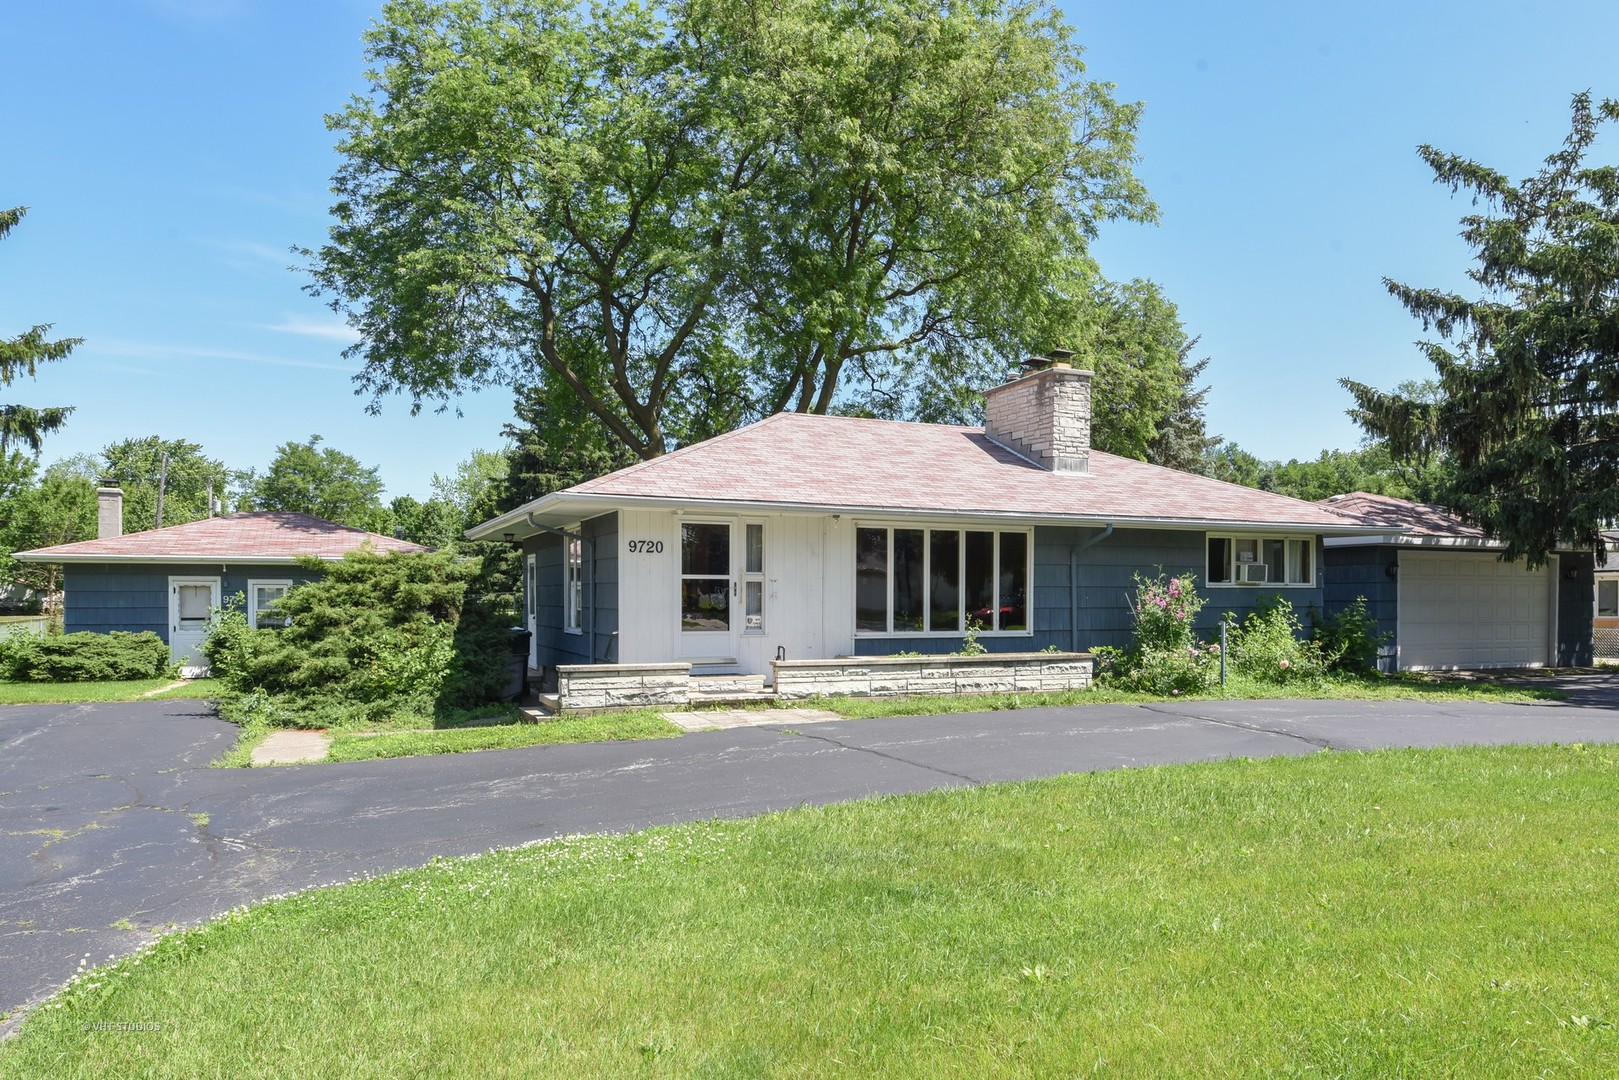 9720 West 58th Street, Countryside, Illinois